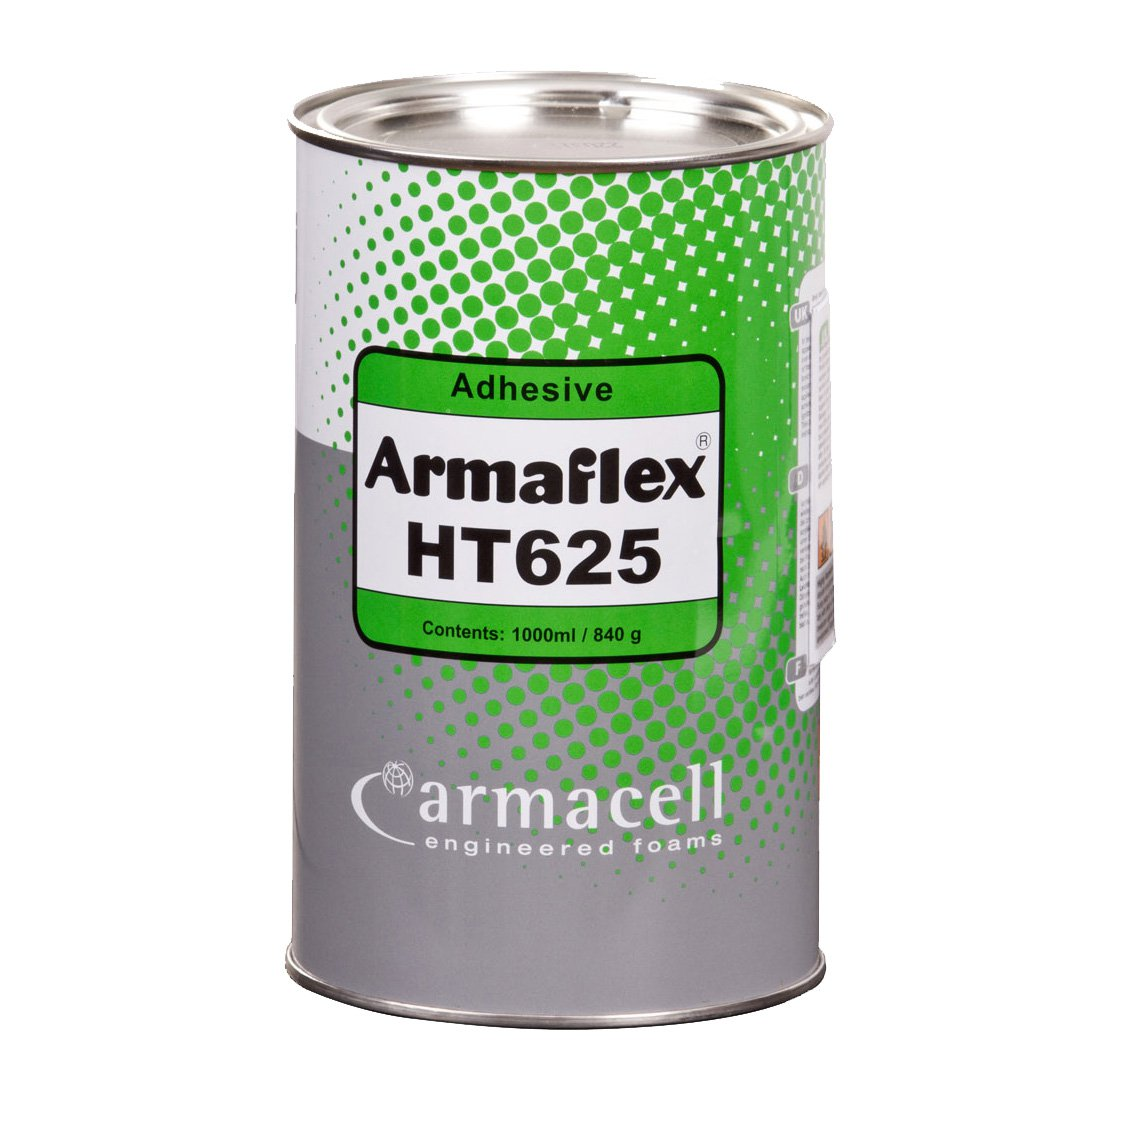 Lepidlo Armaflex HT 625 1000ml